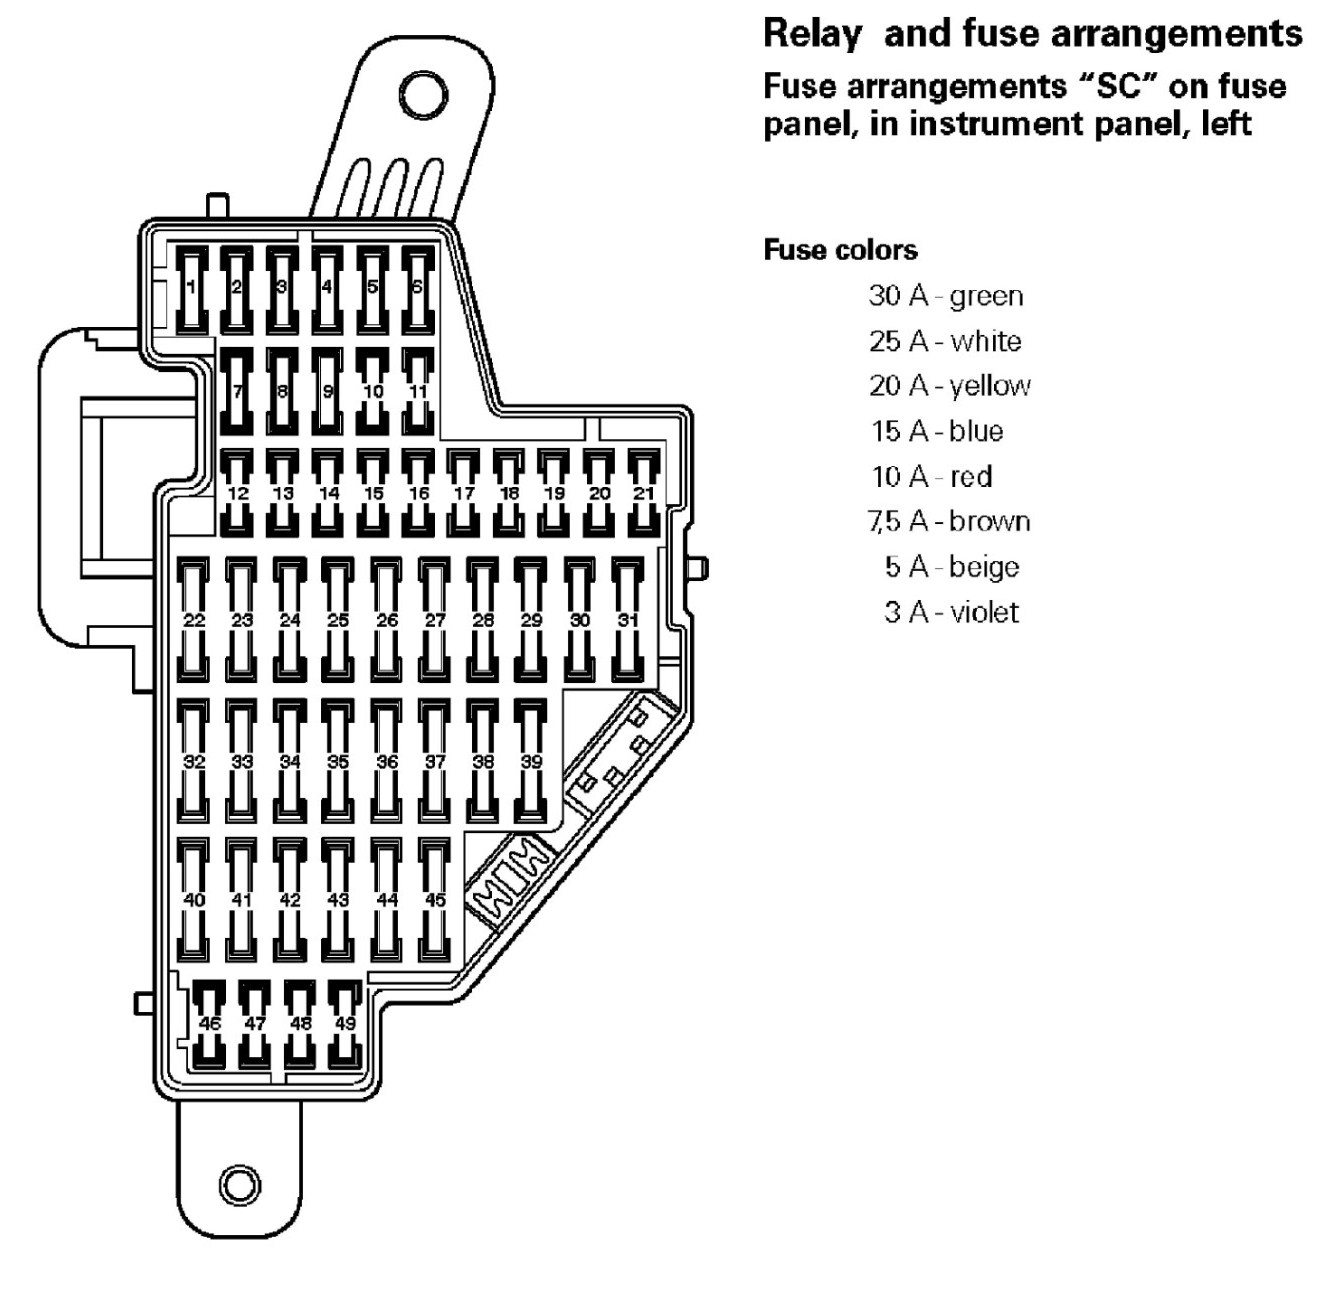 hight resolution of 06 jetta fuse diagram wiring diagram namejetta fuse box 2006 wiring diagram expert 06 jetta tdi